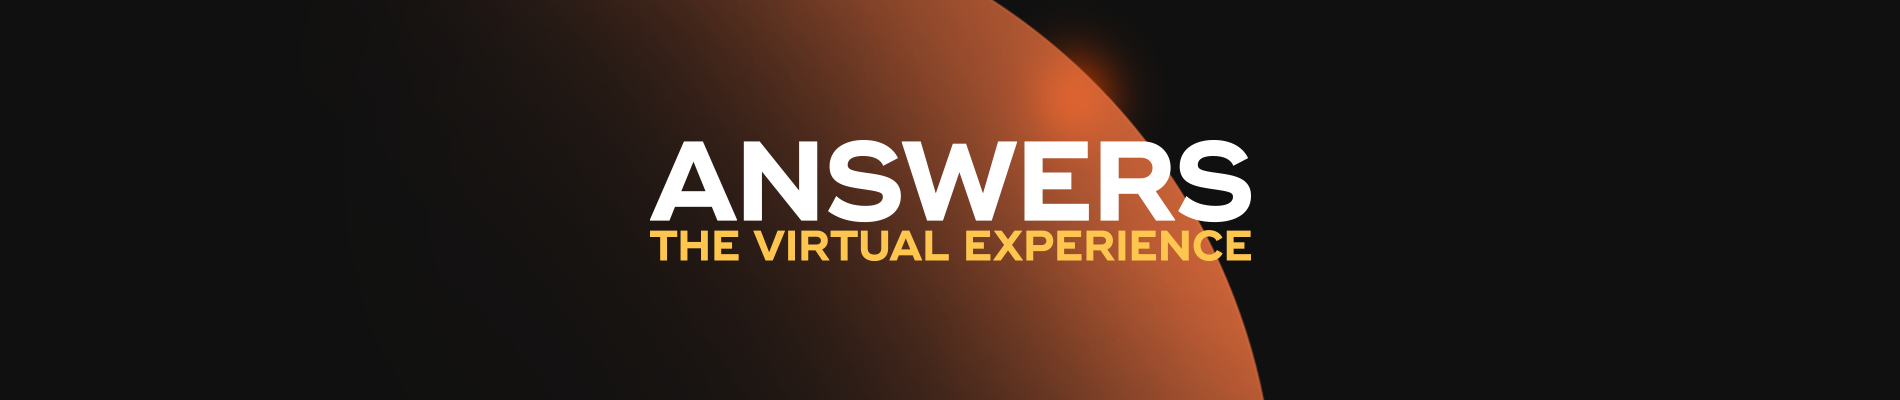 Answers. The Virtual Experience. Teradata Vantage™ Hands-On